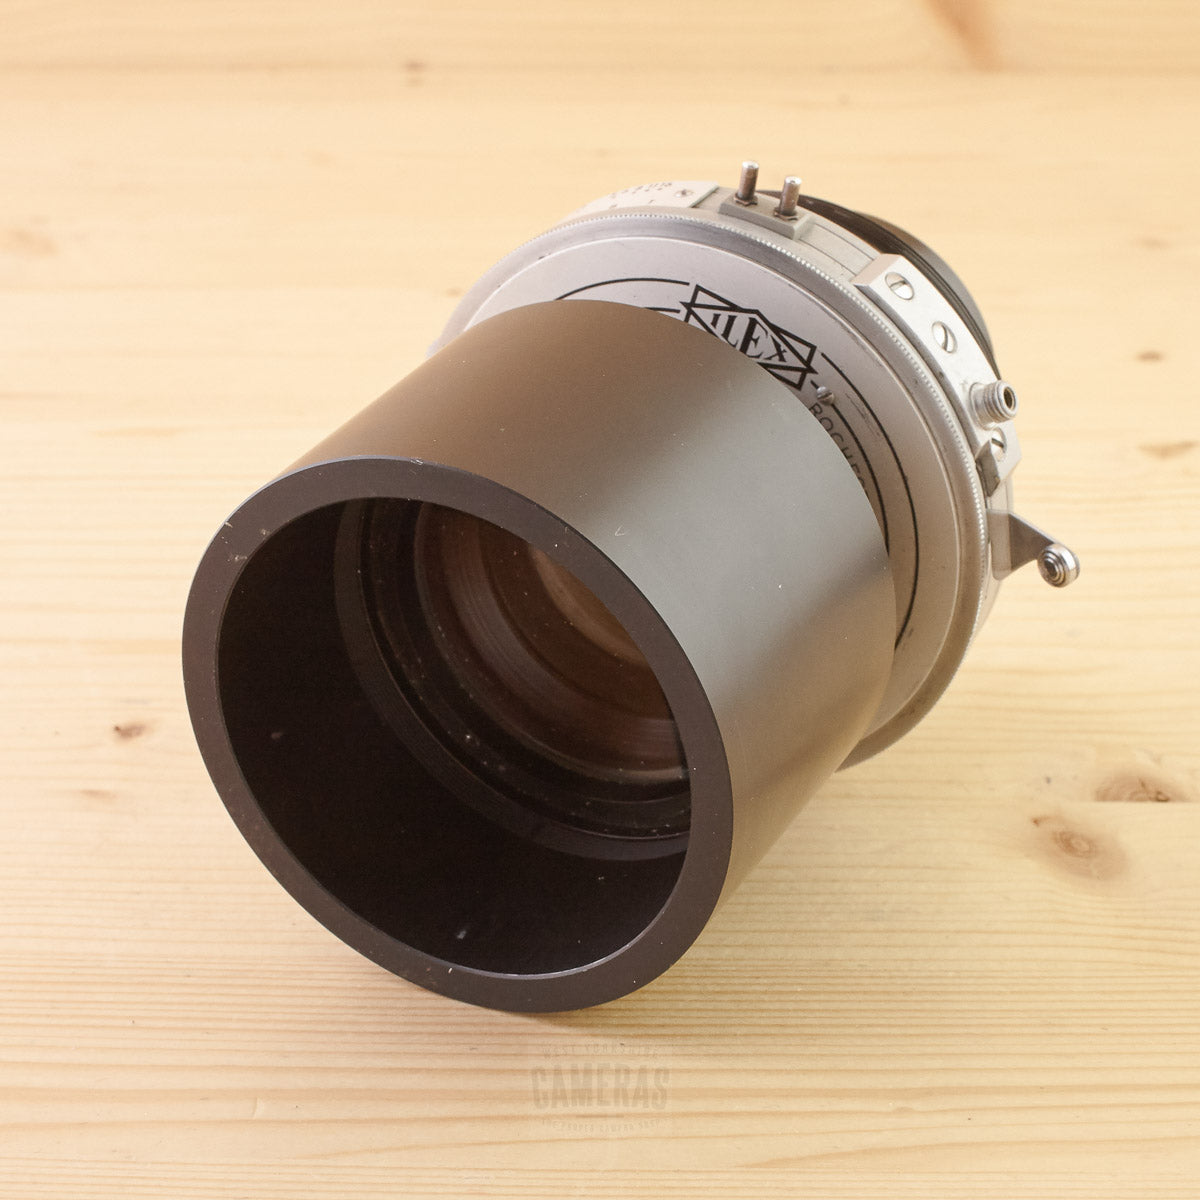 Ilex 80mm f/1.3 Oscillo-Paragon in Ilex Shutter Exc